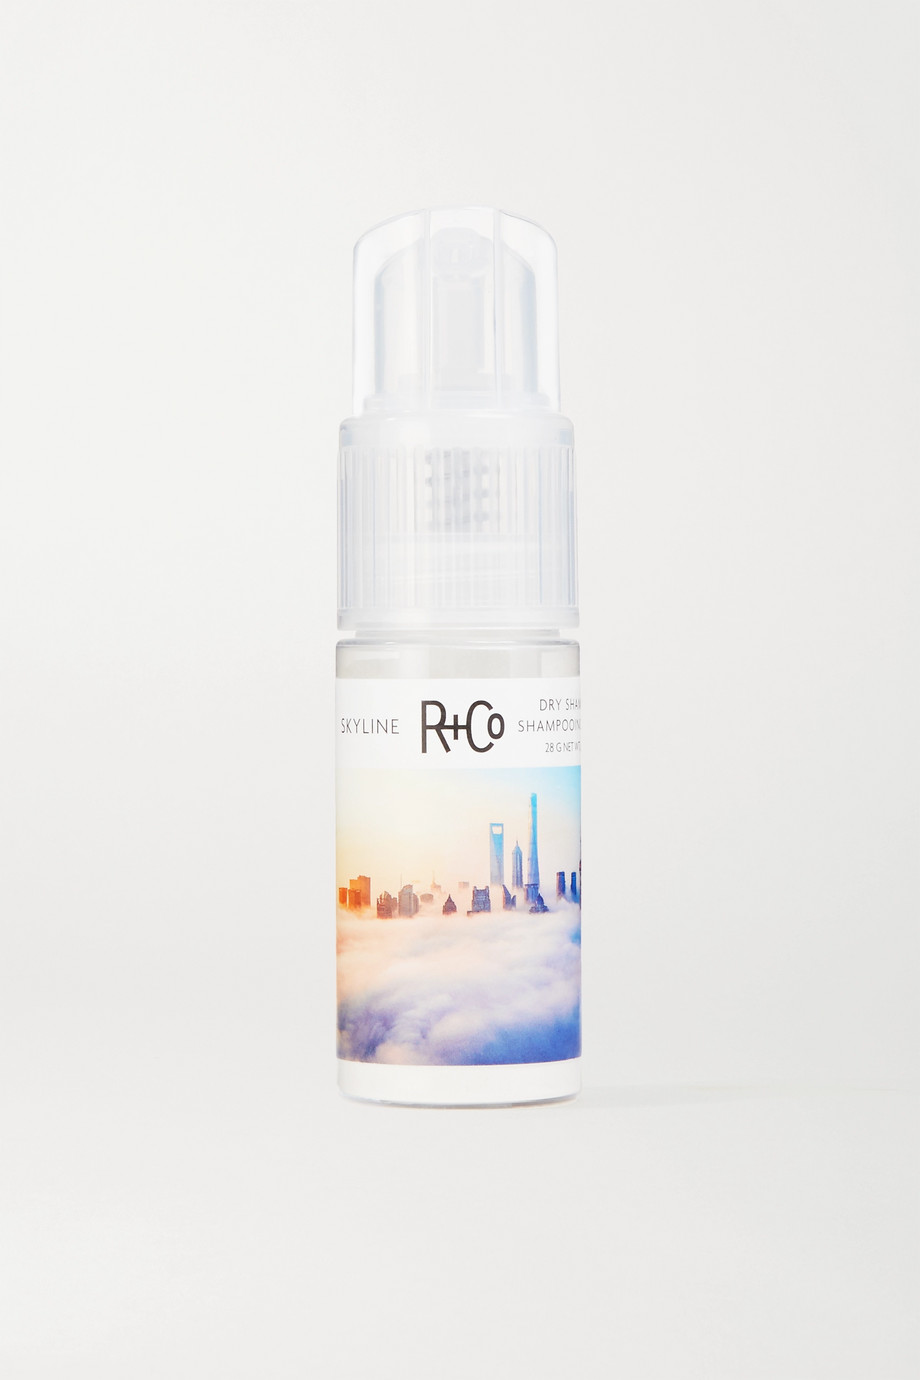 R+CO Skyline Dry Shampoo, 57g